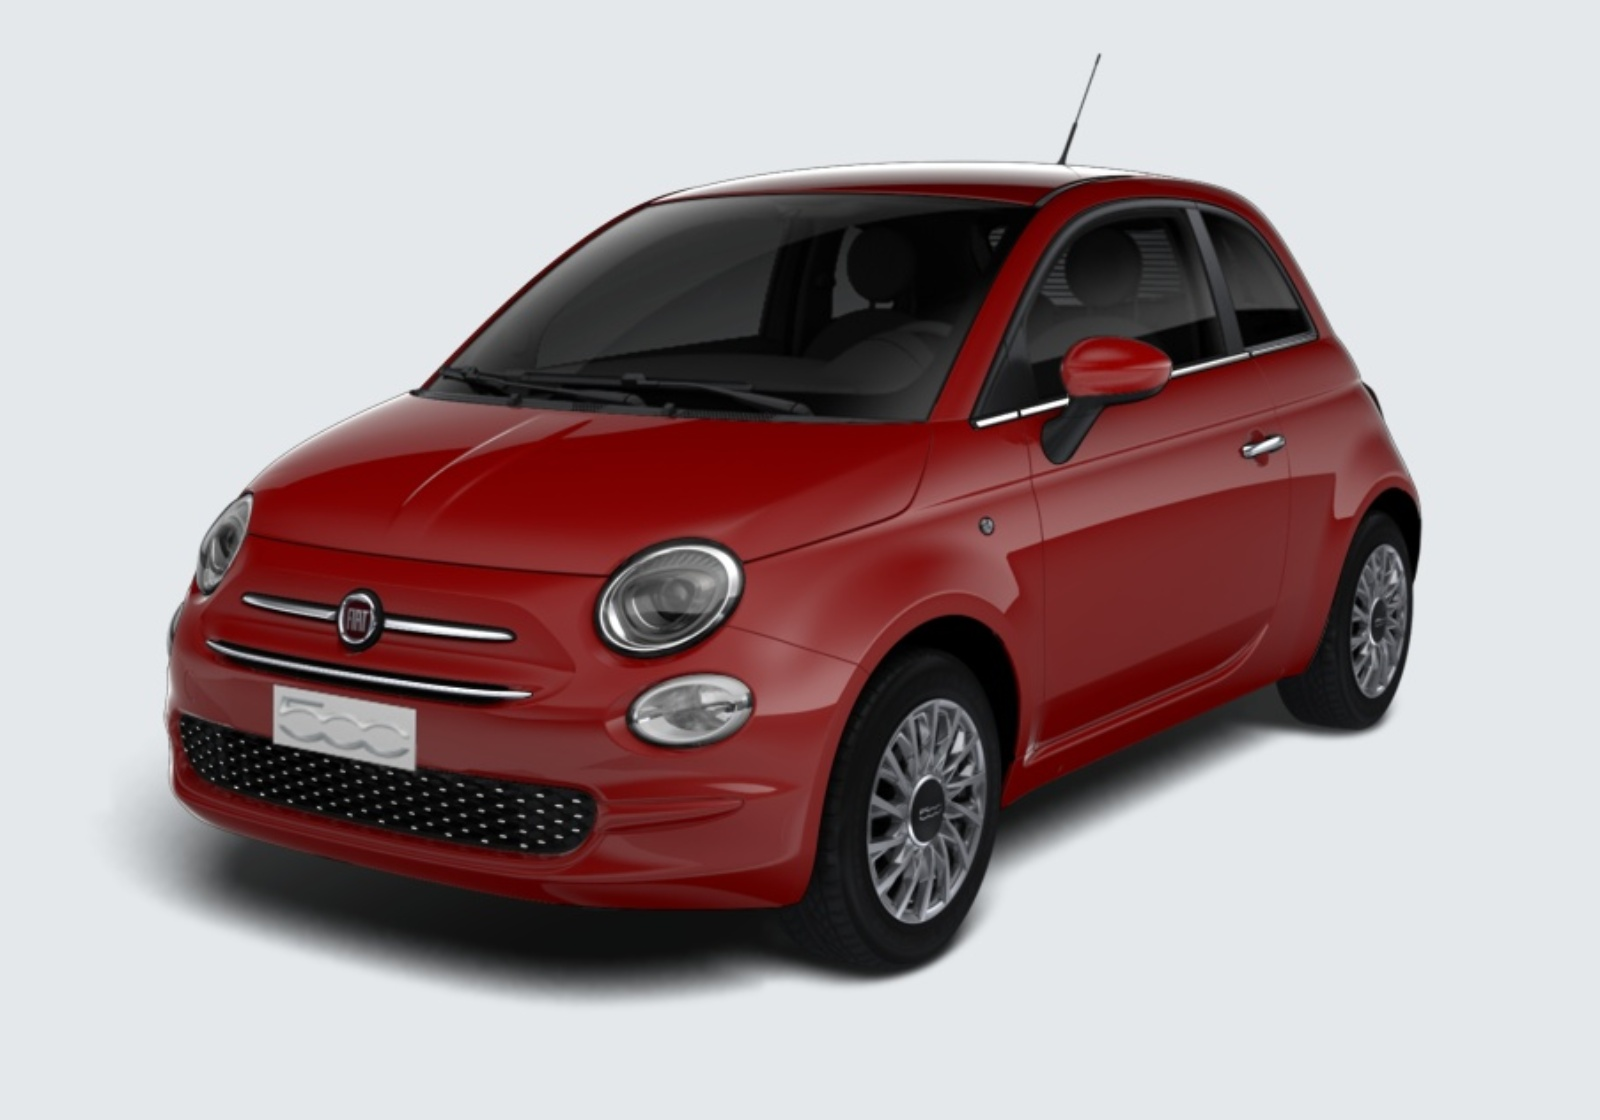 FIAT 500 1.2 EasyPower Lounge Rosso Passione Km 0